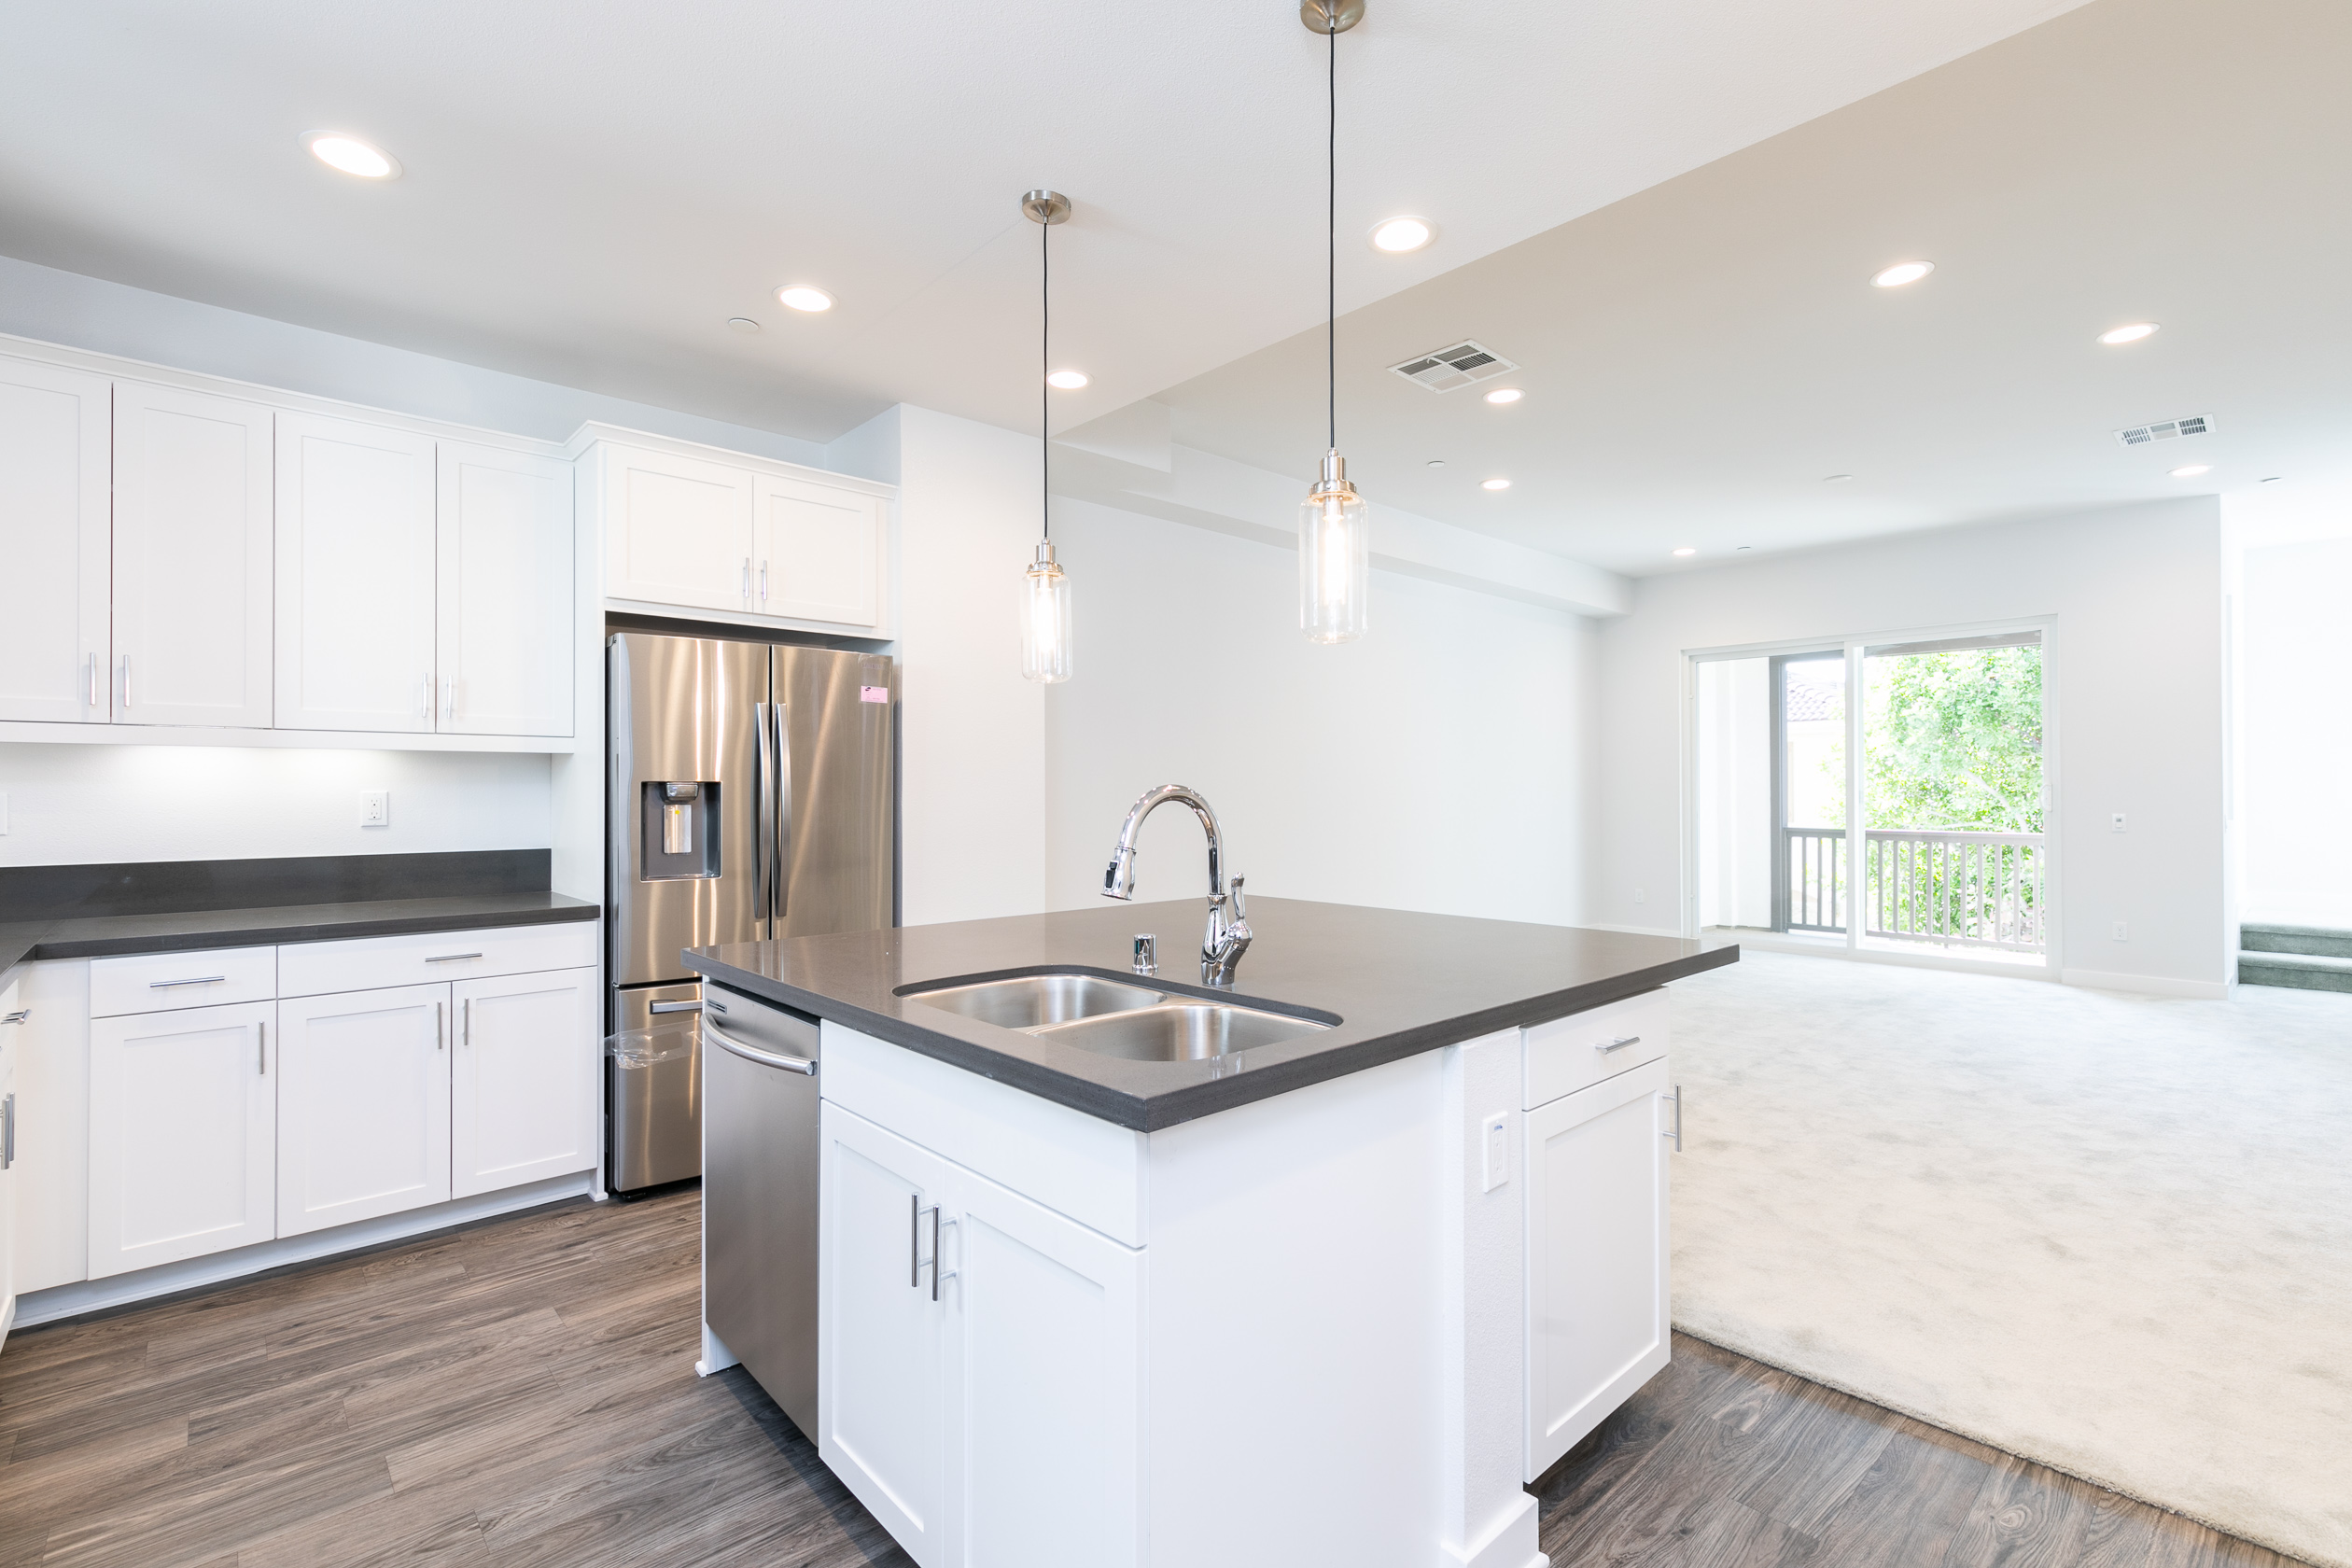 Brand new build in an amazing new West Hills development!